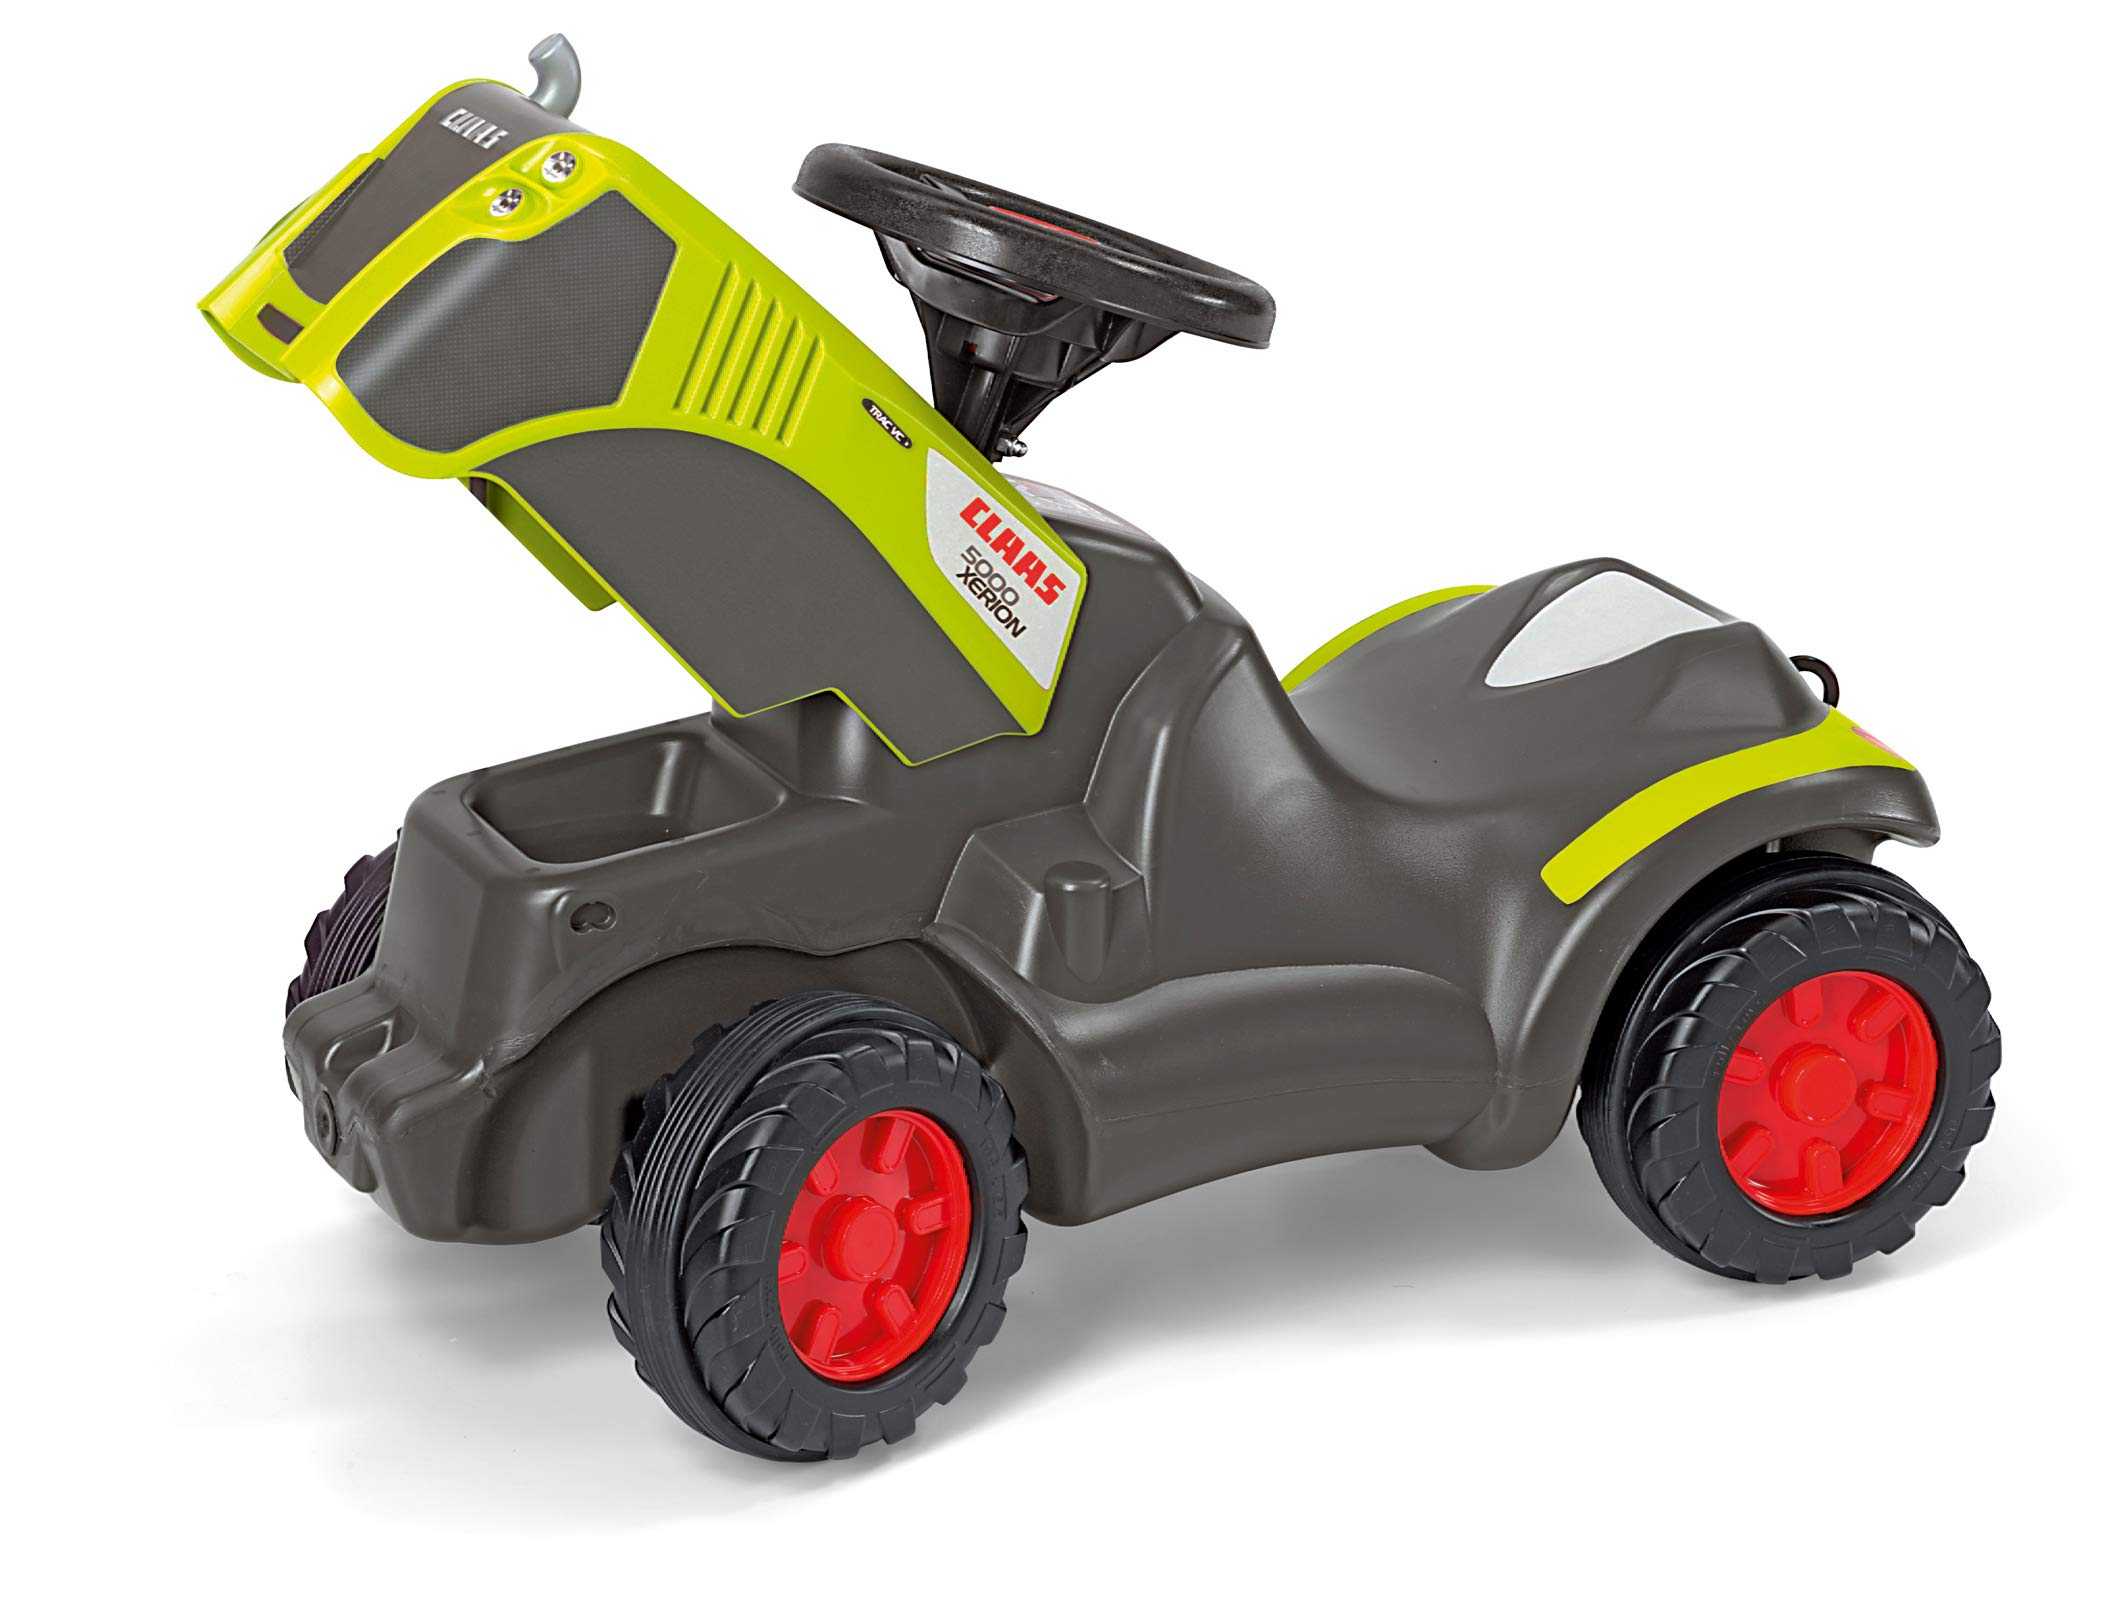 rolly toys S2613265 Franz Cutter Minitrac Class Xerion Toy by rolly toys (Image #2)